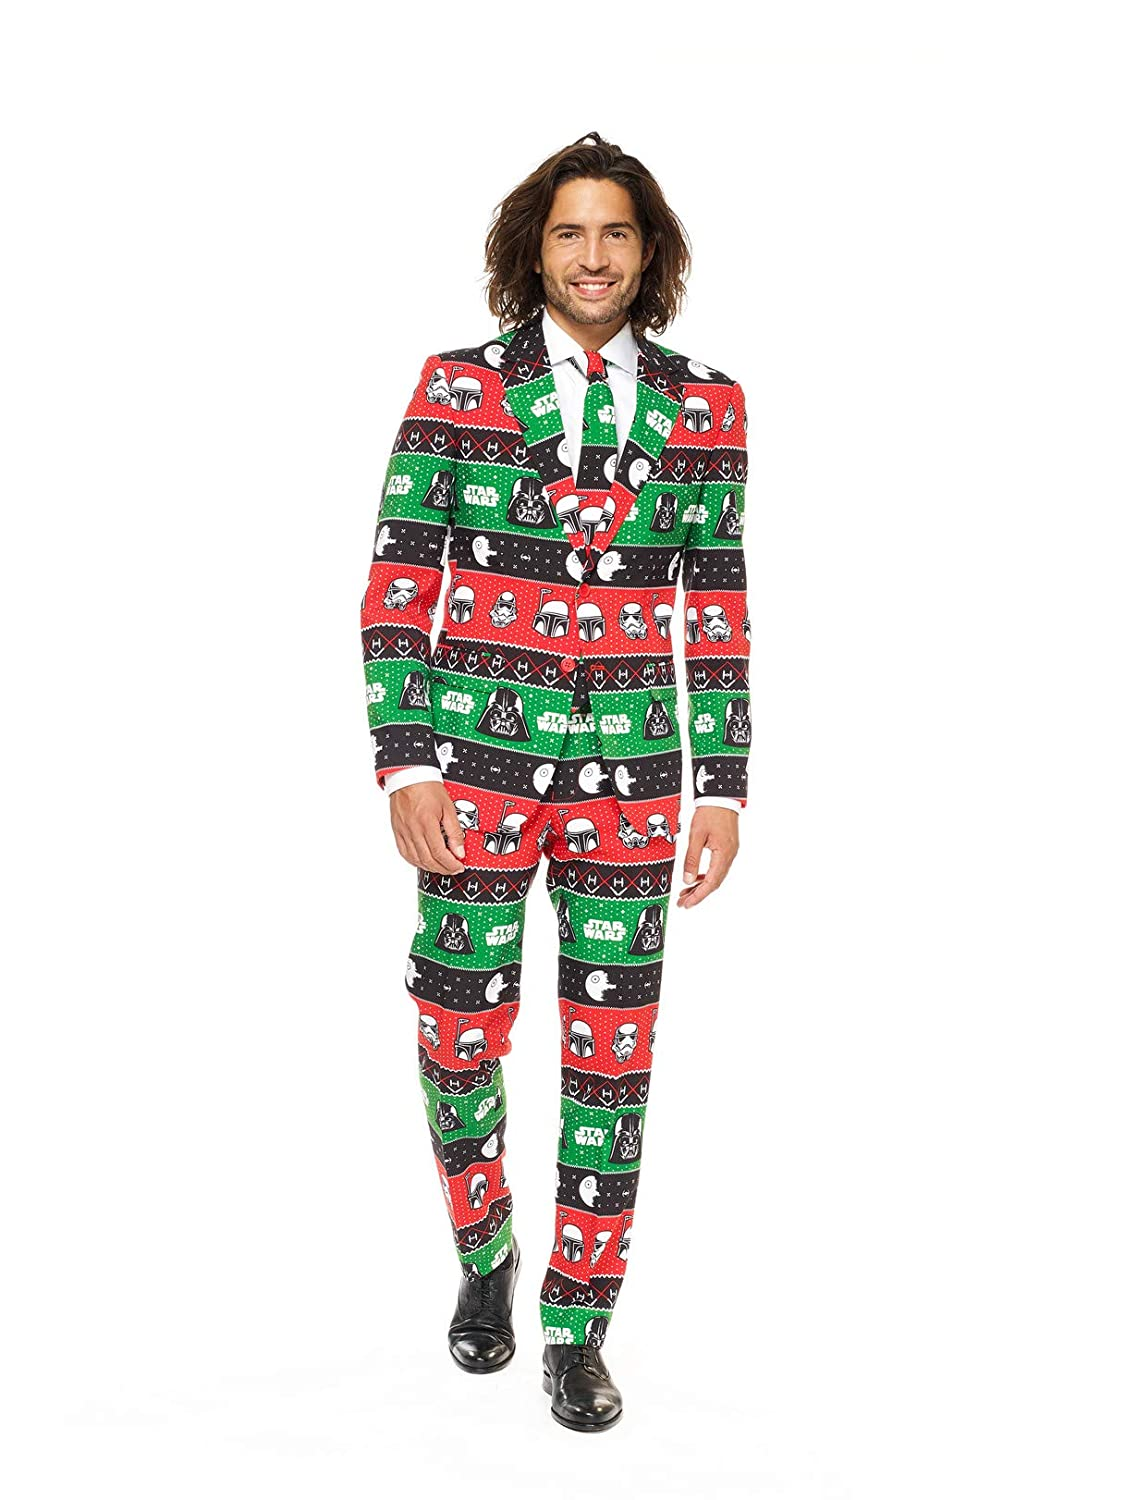 Opposuits Official STAR WARSTM Suit - Starry Side Costume Comes With Pants, Jacket and Tie, Starry SideTM, 58 Festive Forcetm